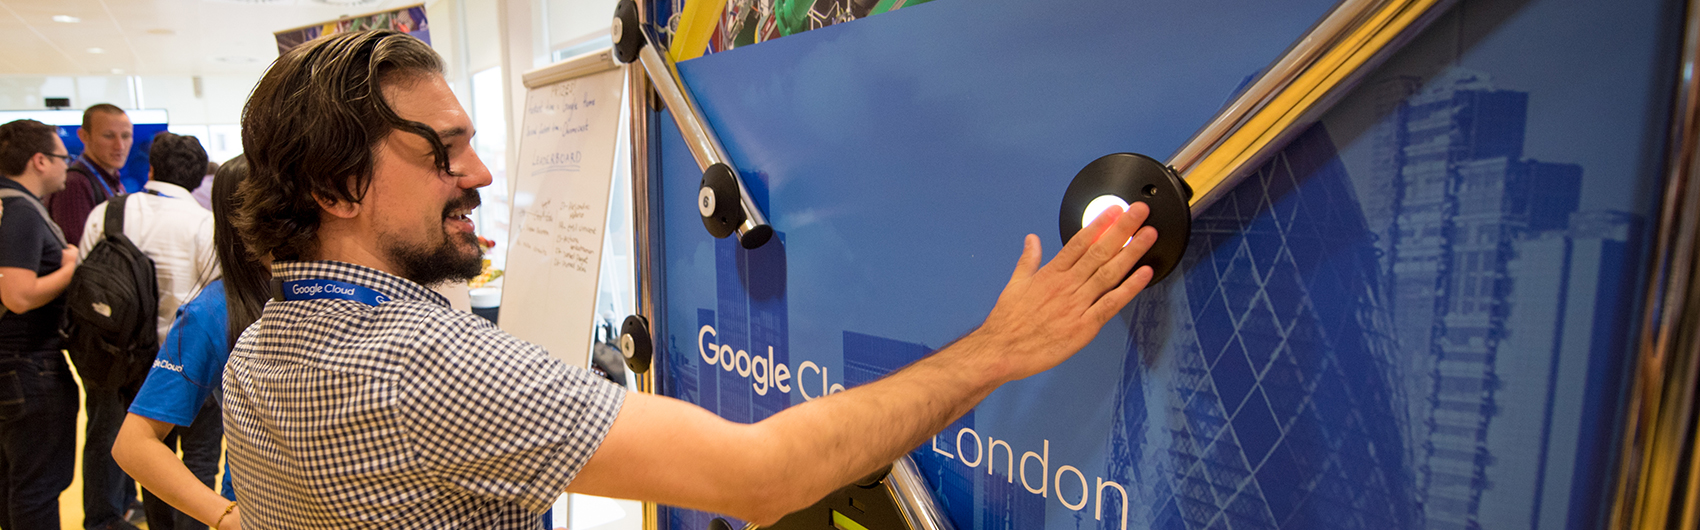 Google London Partner Summit